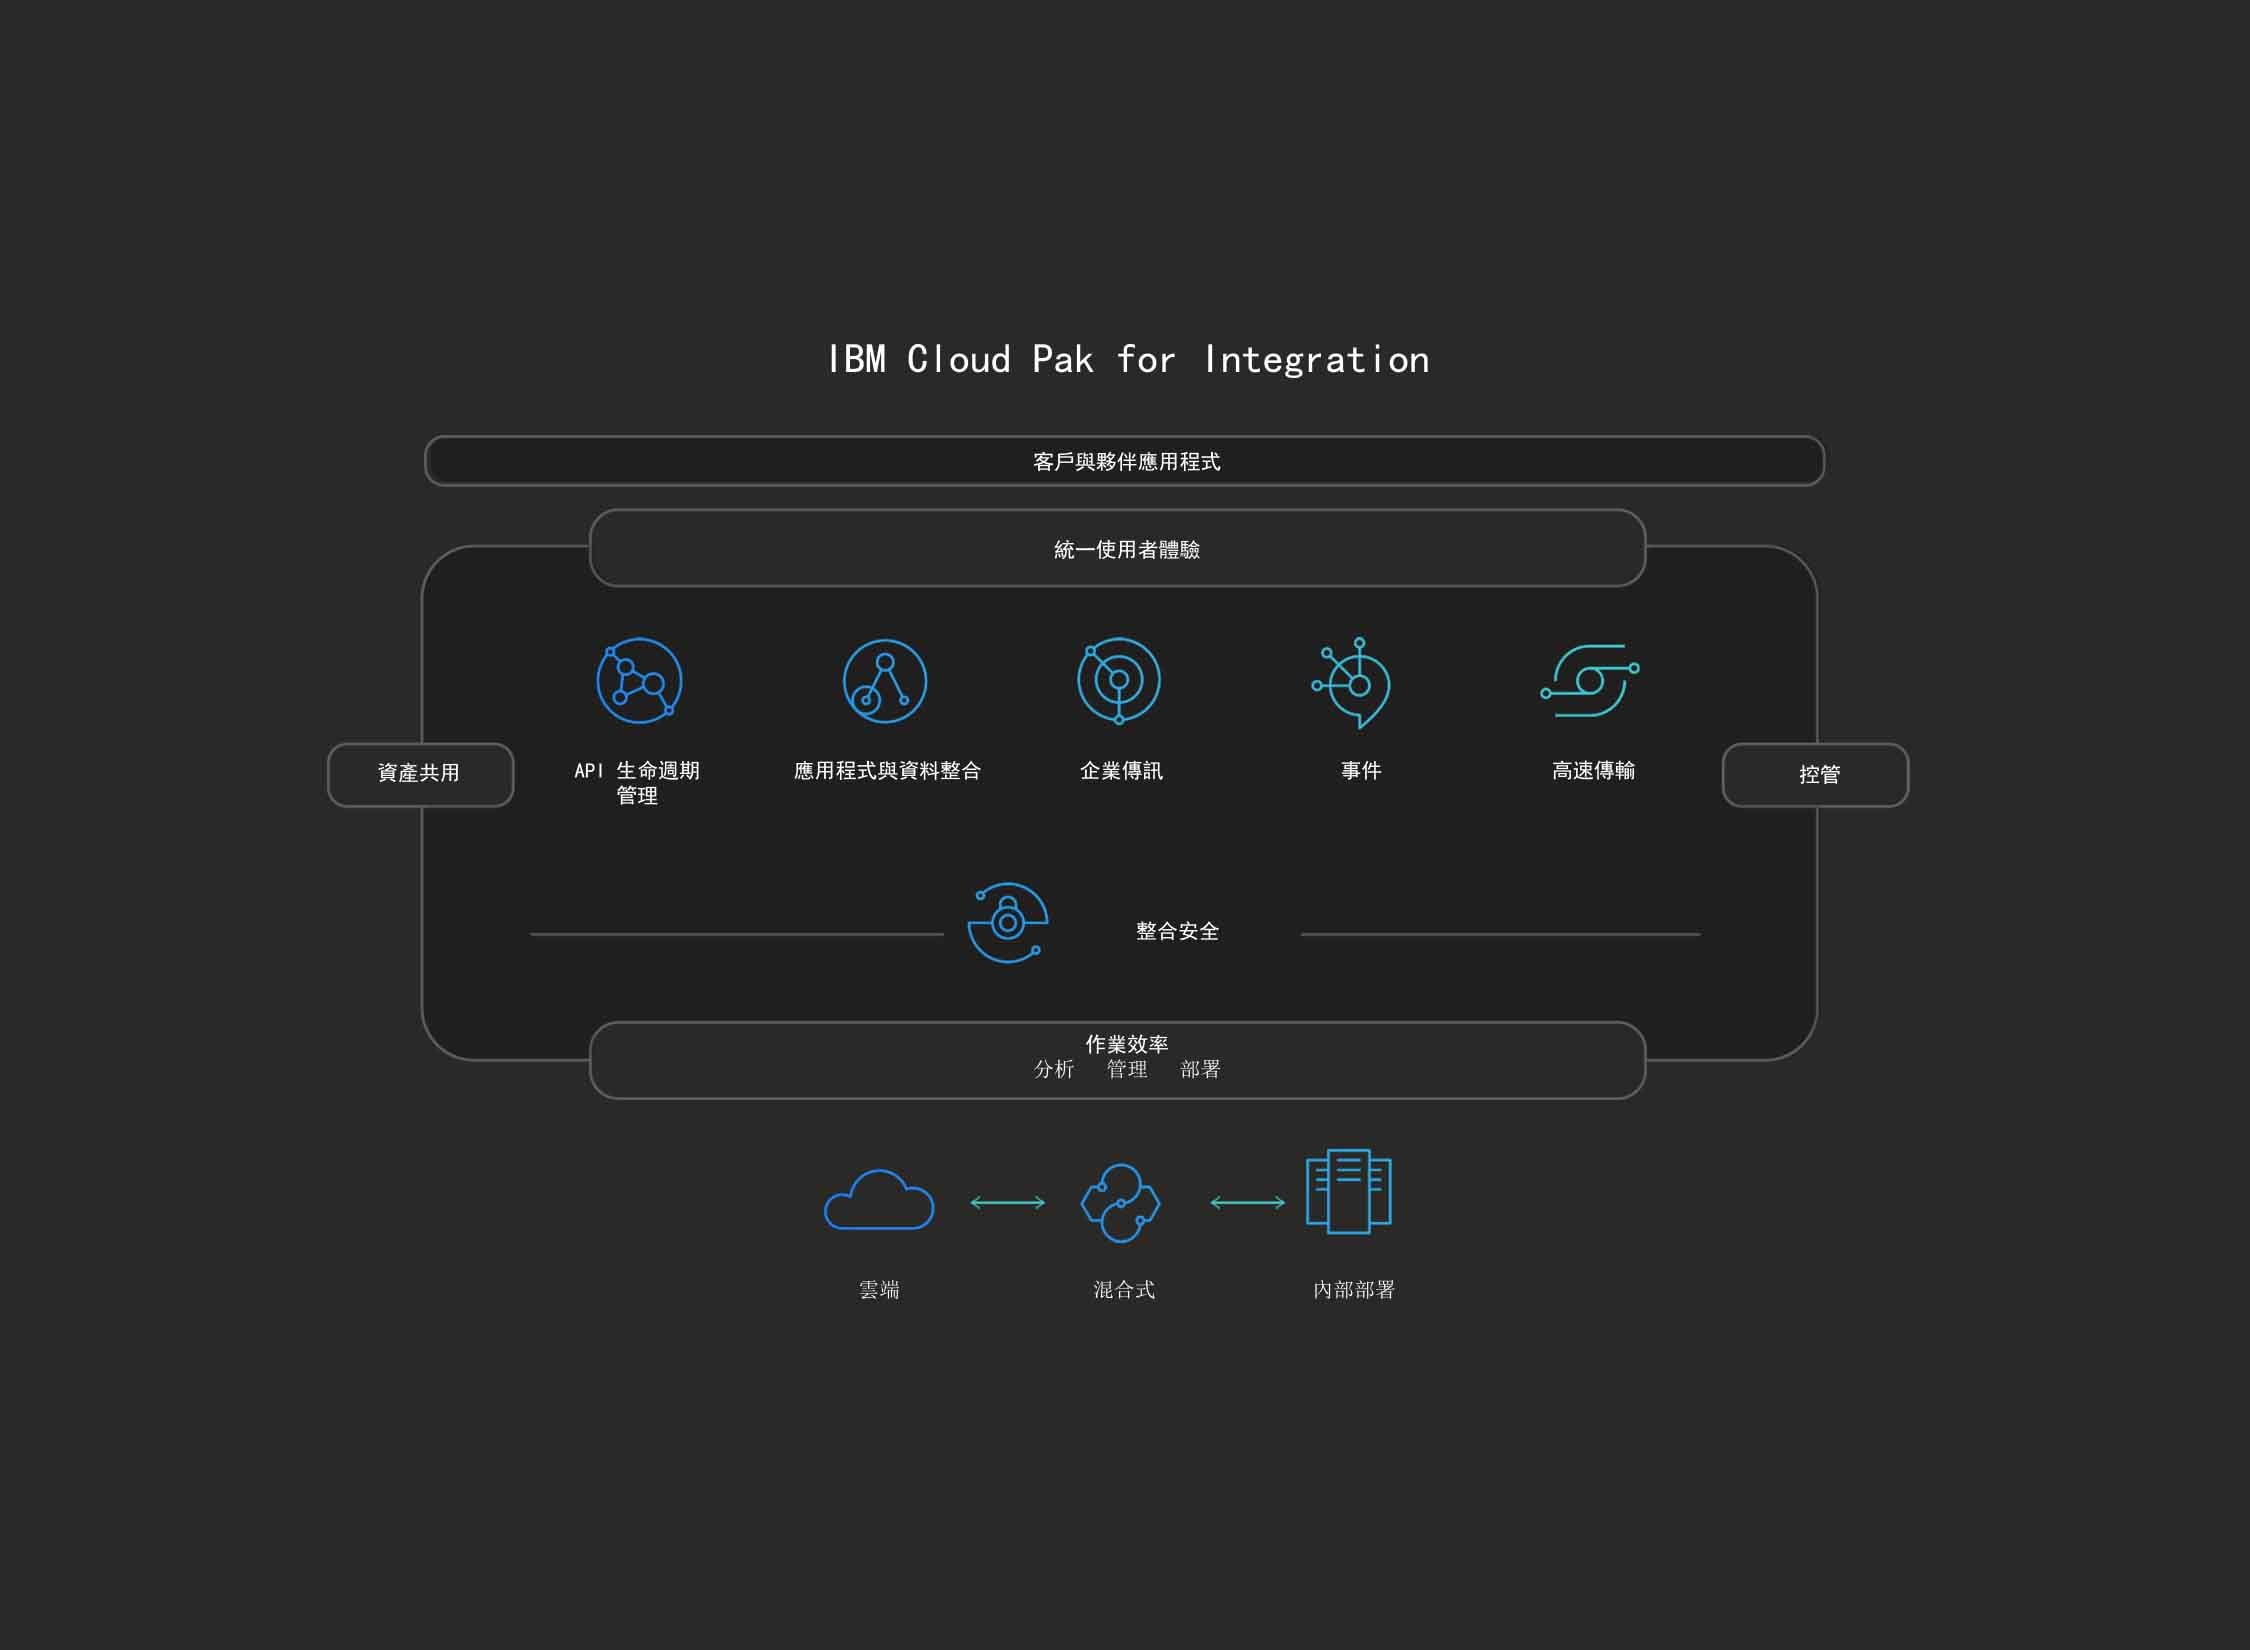 IBM Cloud Pak for Integration 圖表